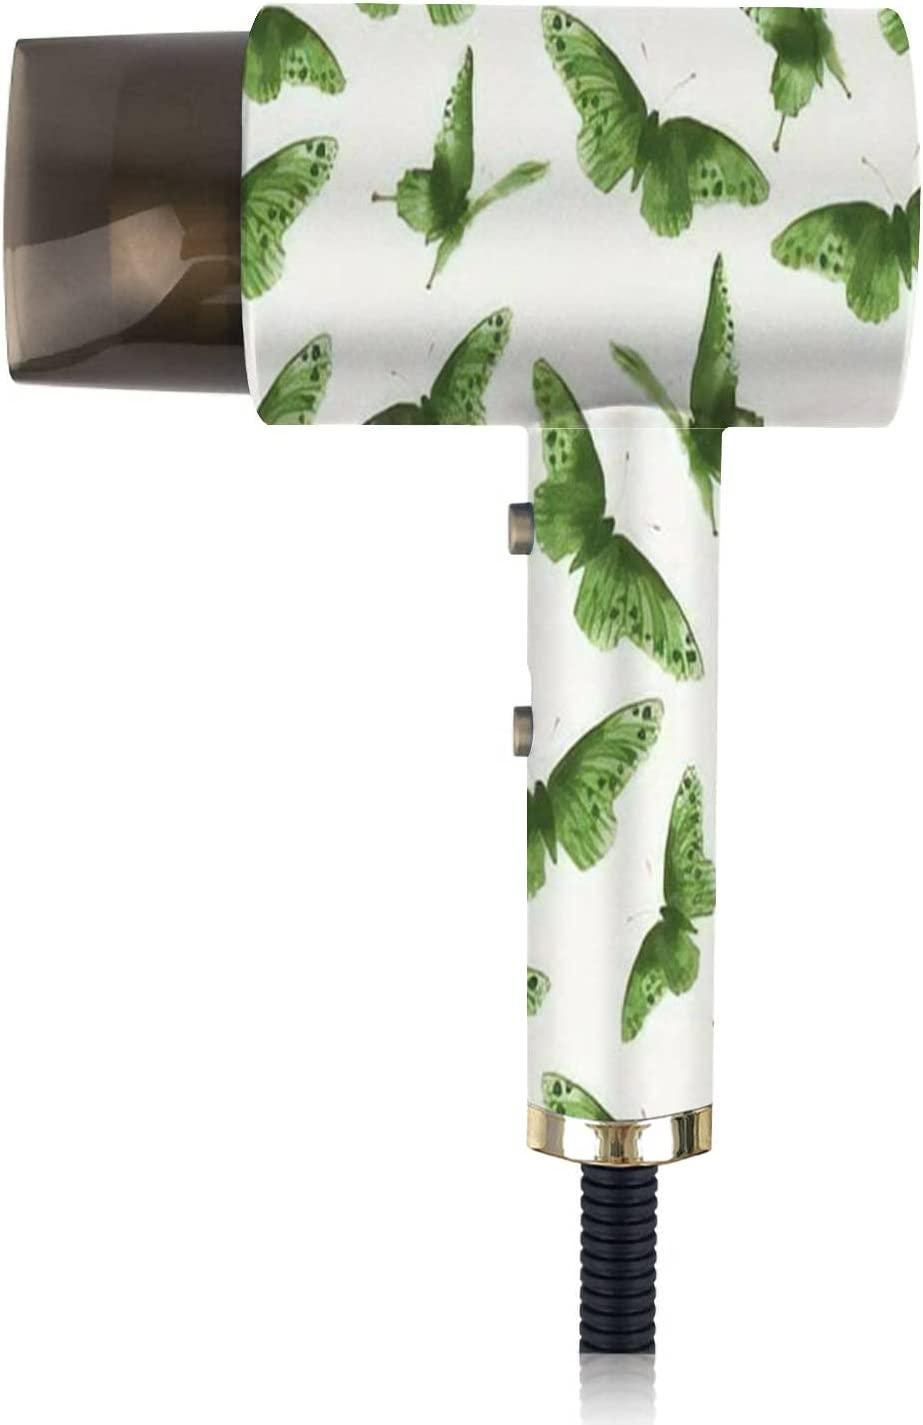 Ionic Hair San Diego Mall Dryer Seamless Background Drawn Hand with Butterflies Max 46% OFF